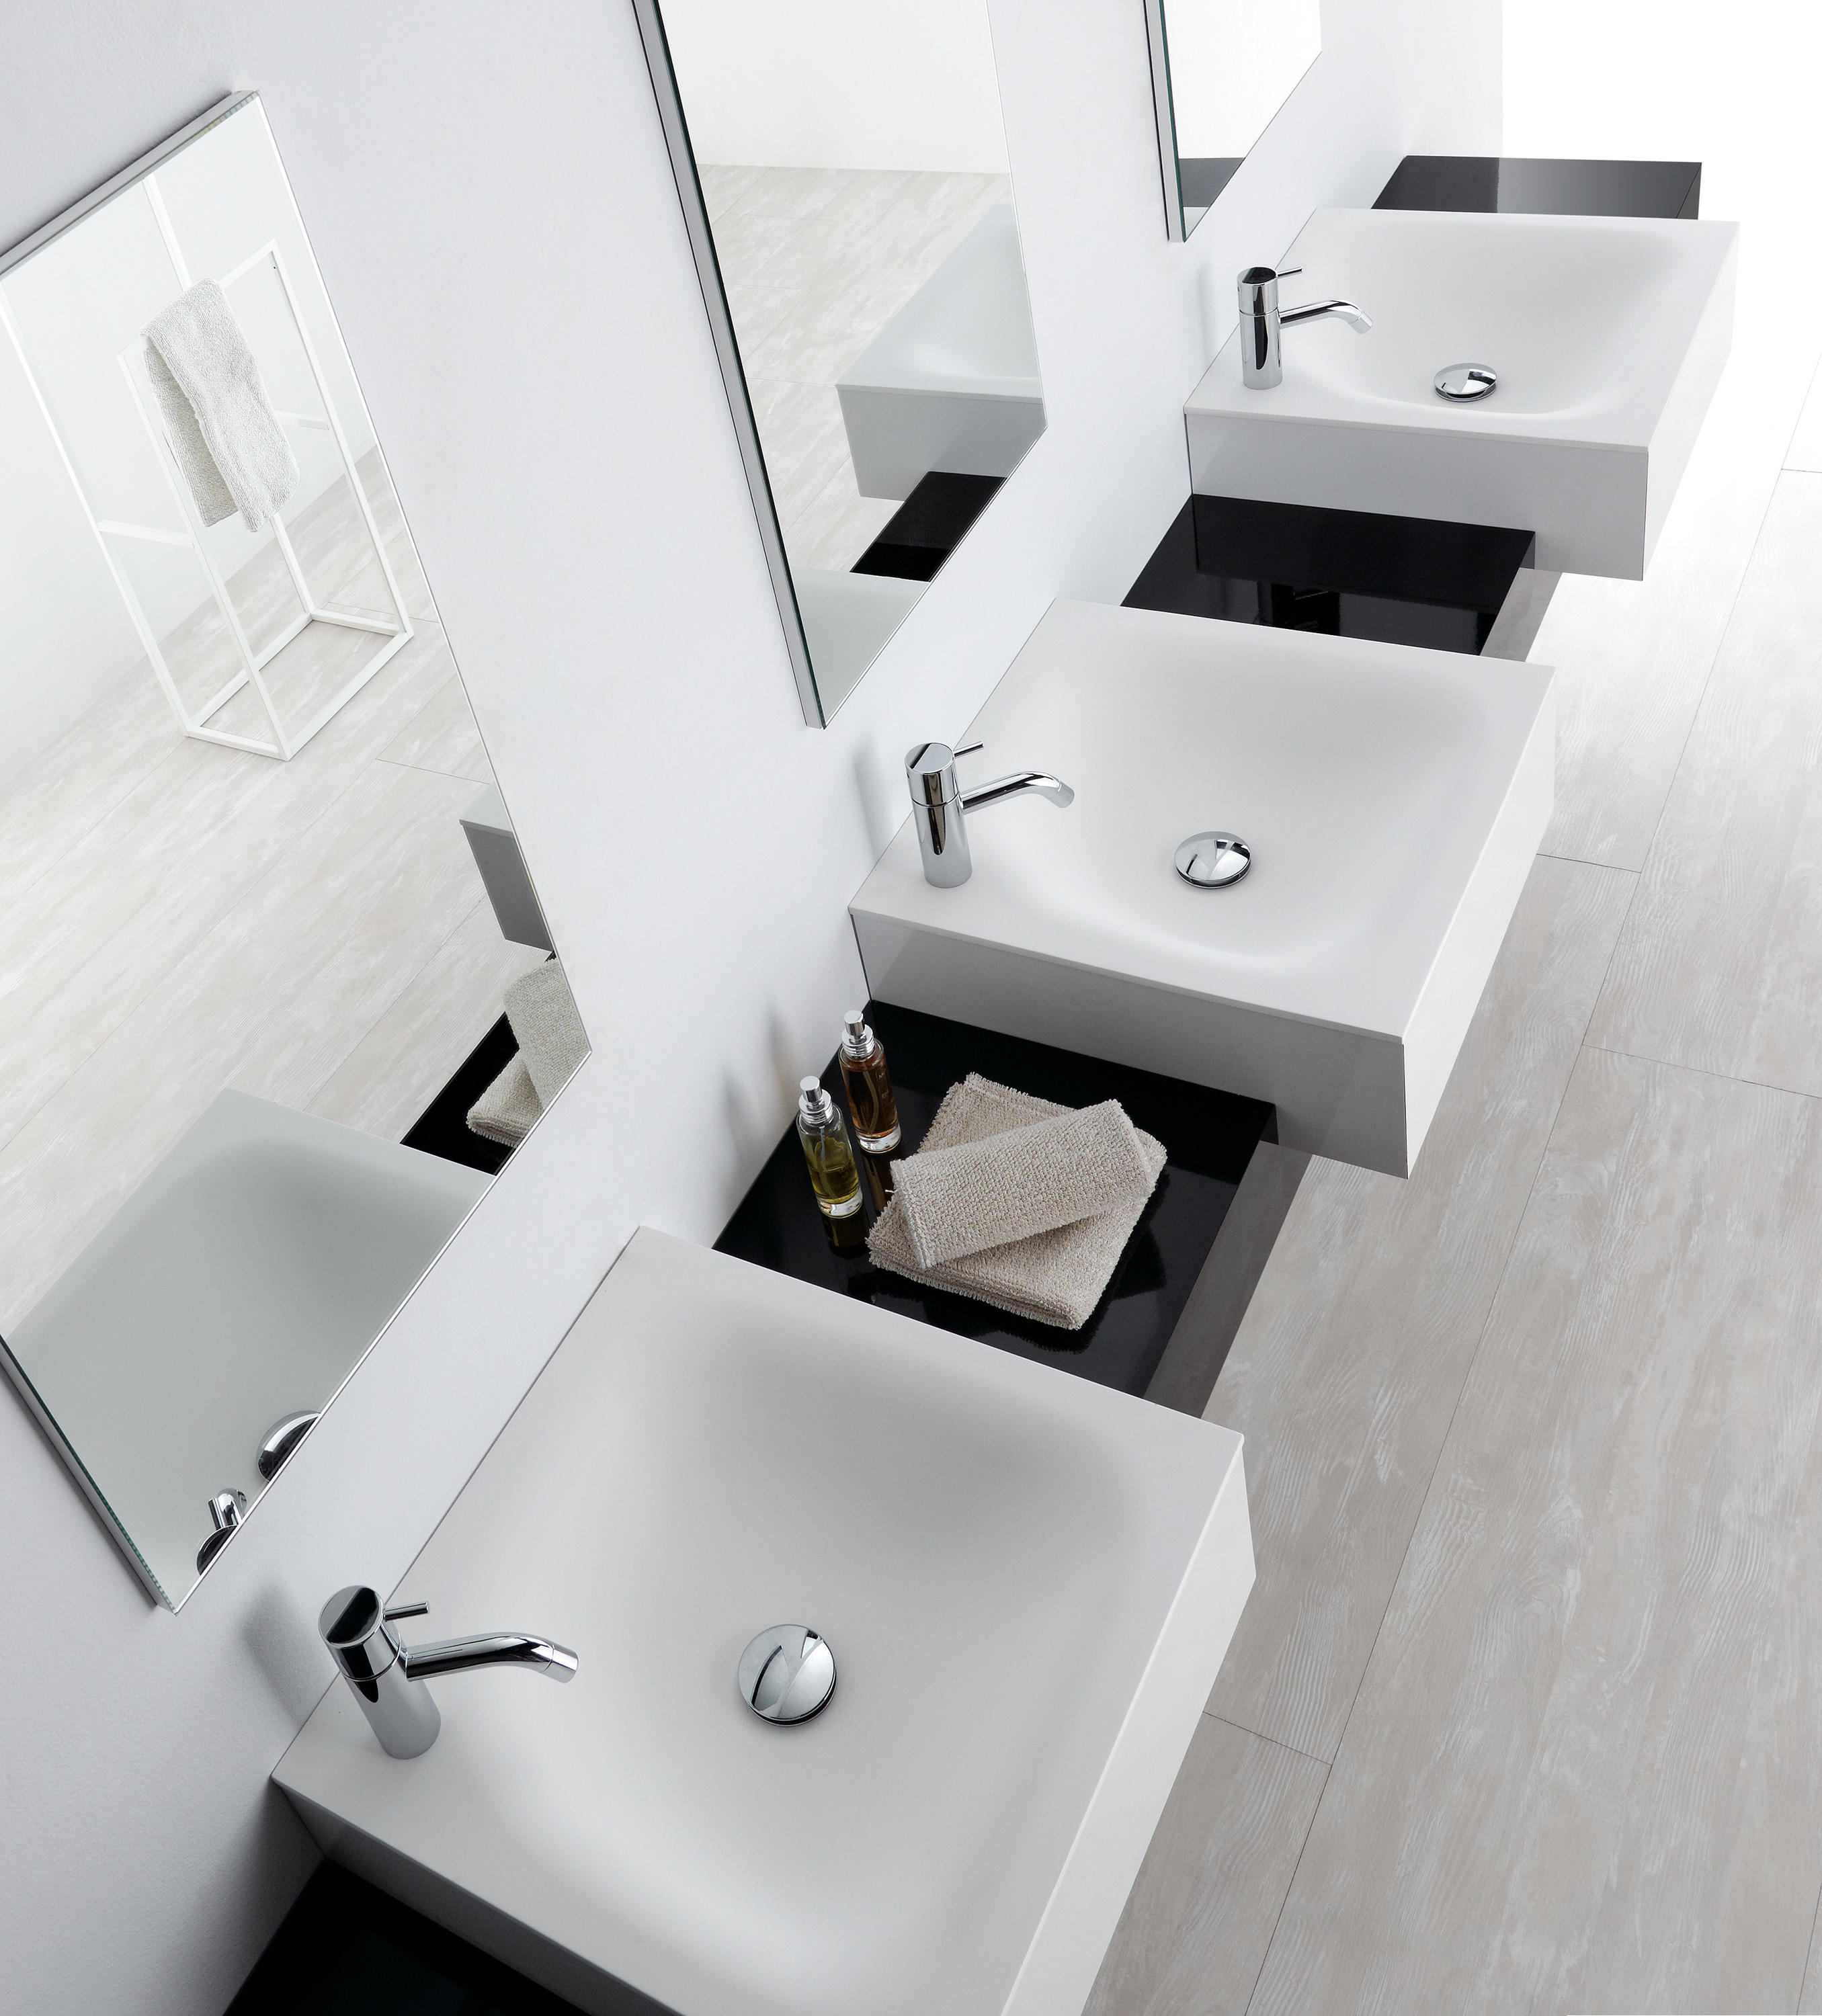 e27177a8a OLA - Bathroom furniture from Sistema Midi | Architonic